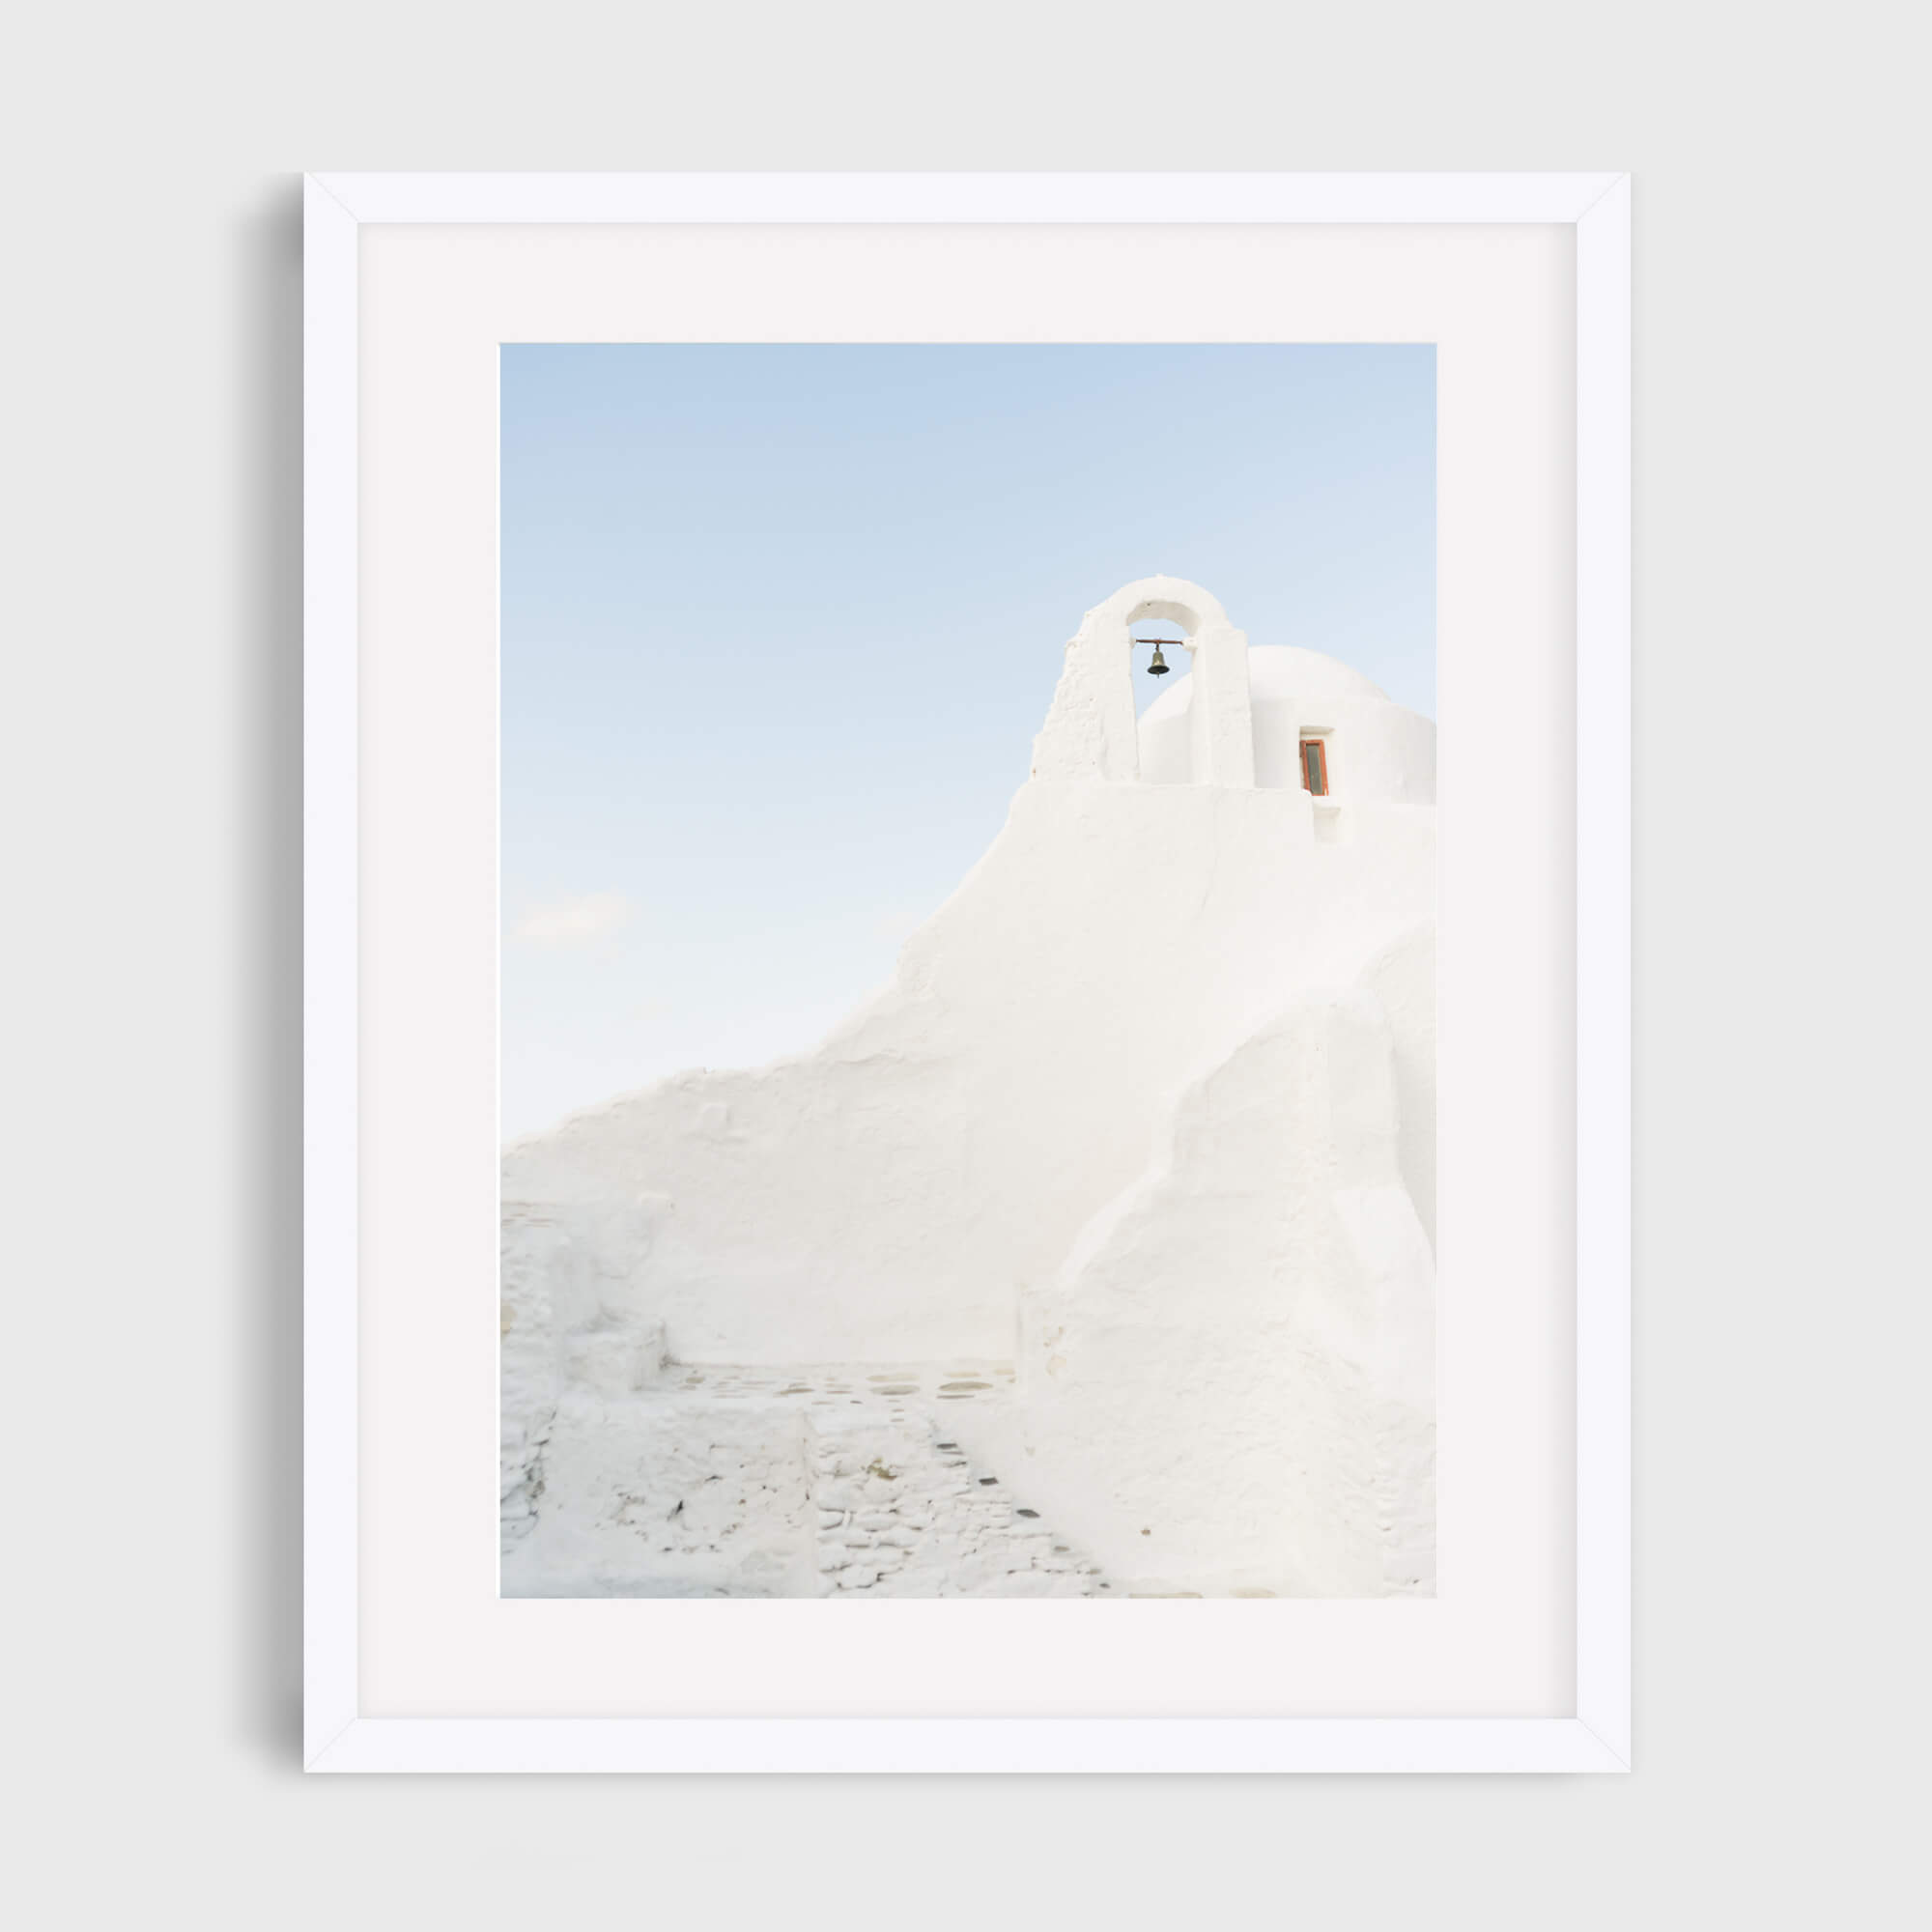 Mikonos Bell Tower - Care Studios Prints